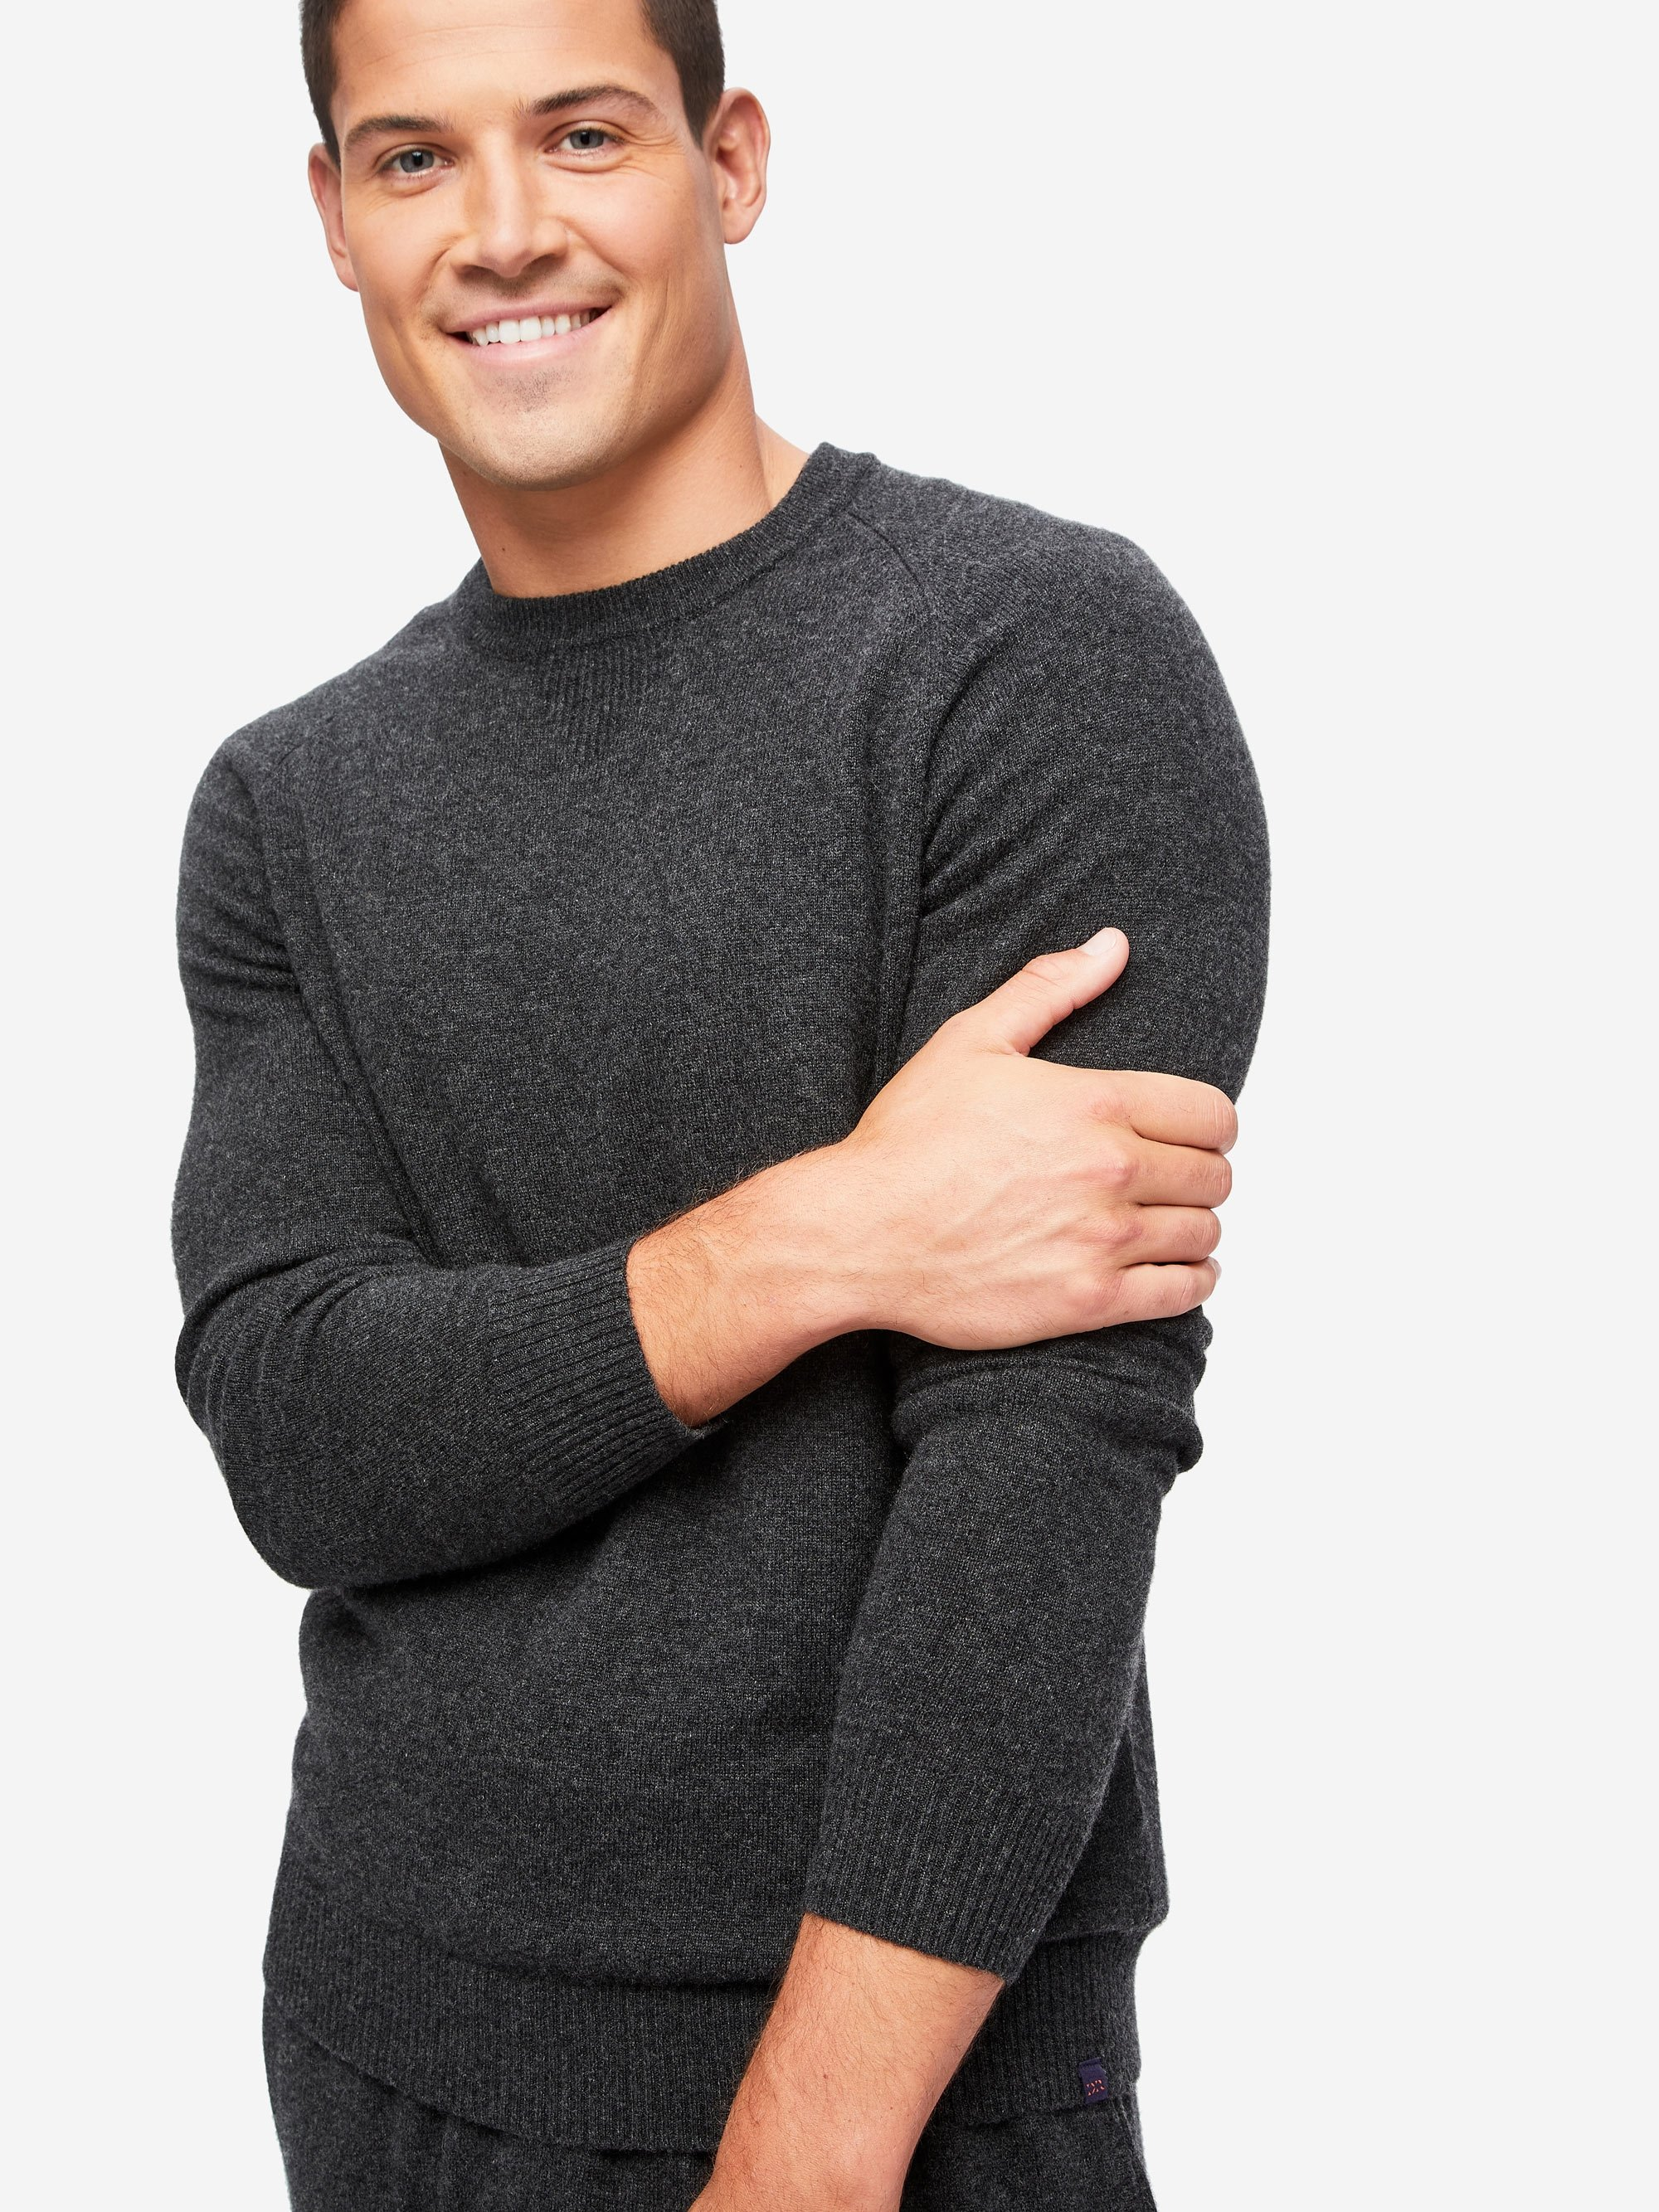 Men's Sweater Finley 2 Cashmere Charcoal